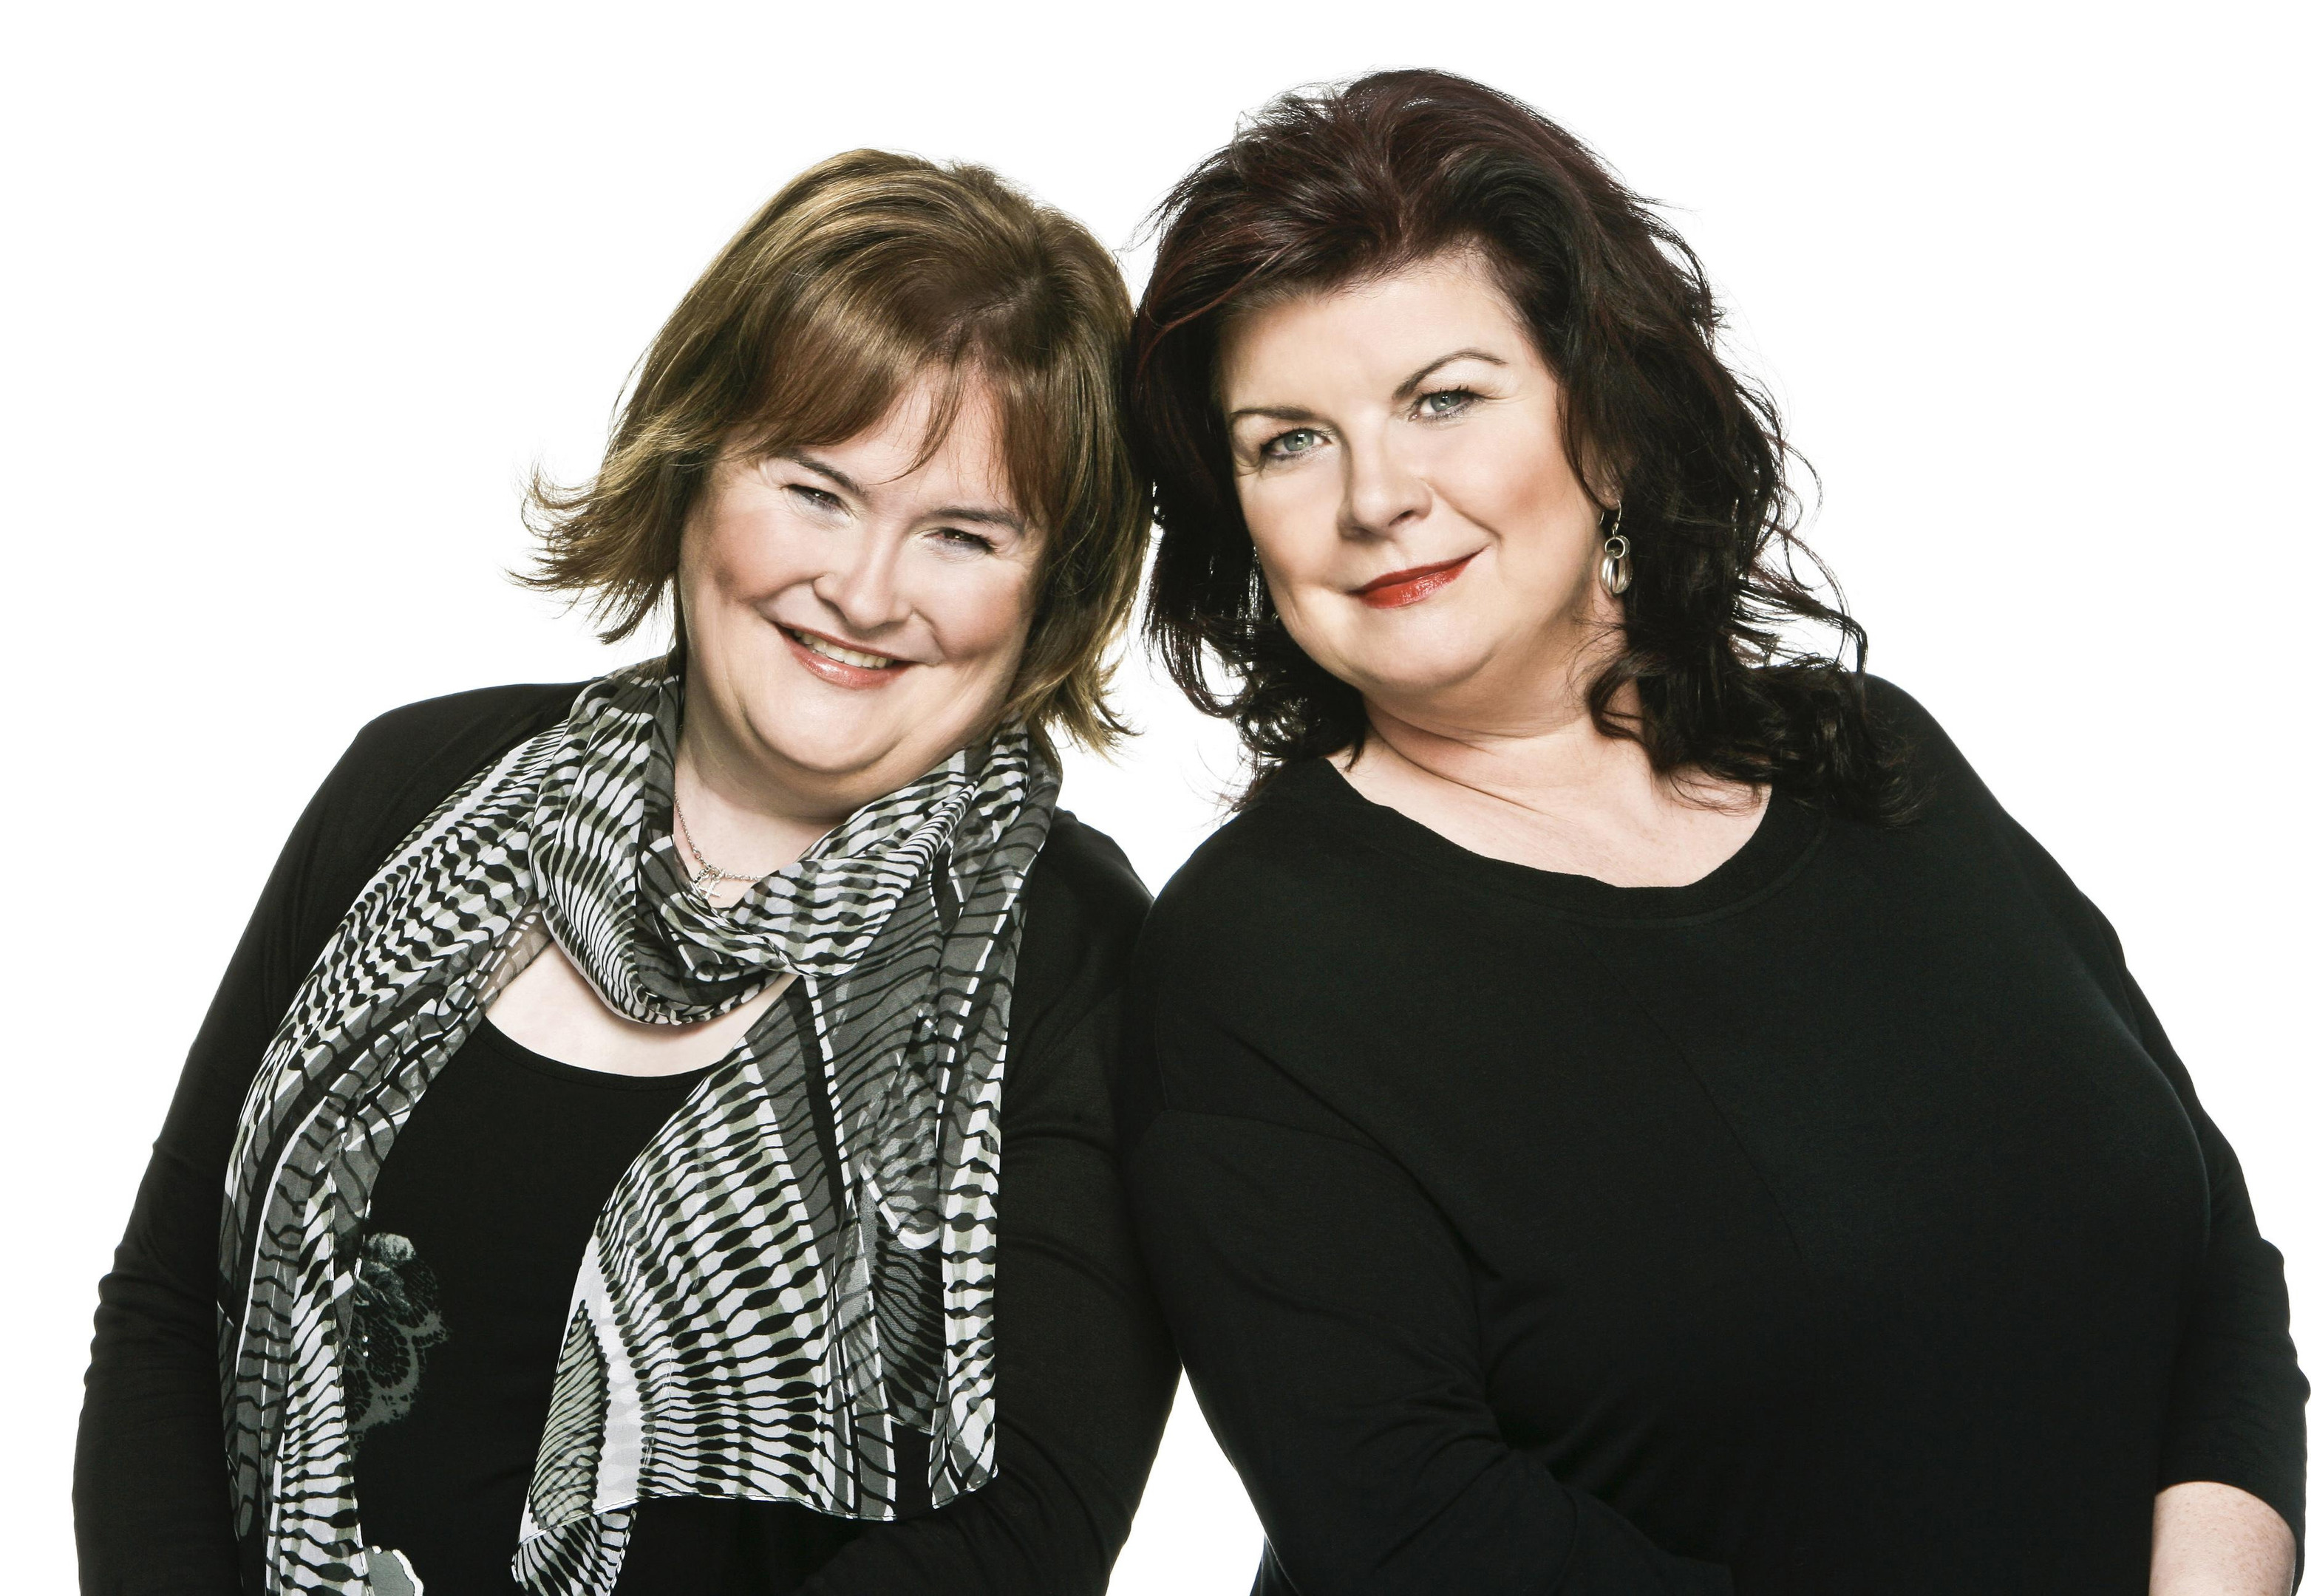 Elaine C. Smith naked (85 foto and video), Topless, Cleavage, Feet, braless 2006